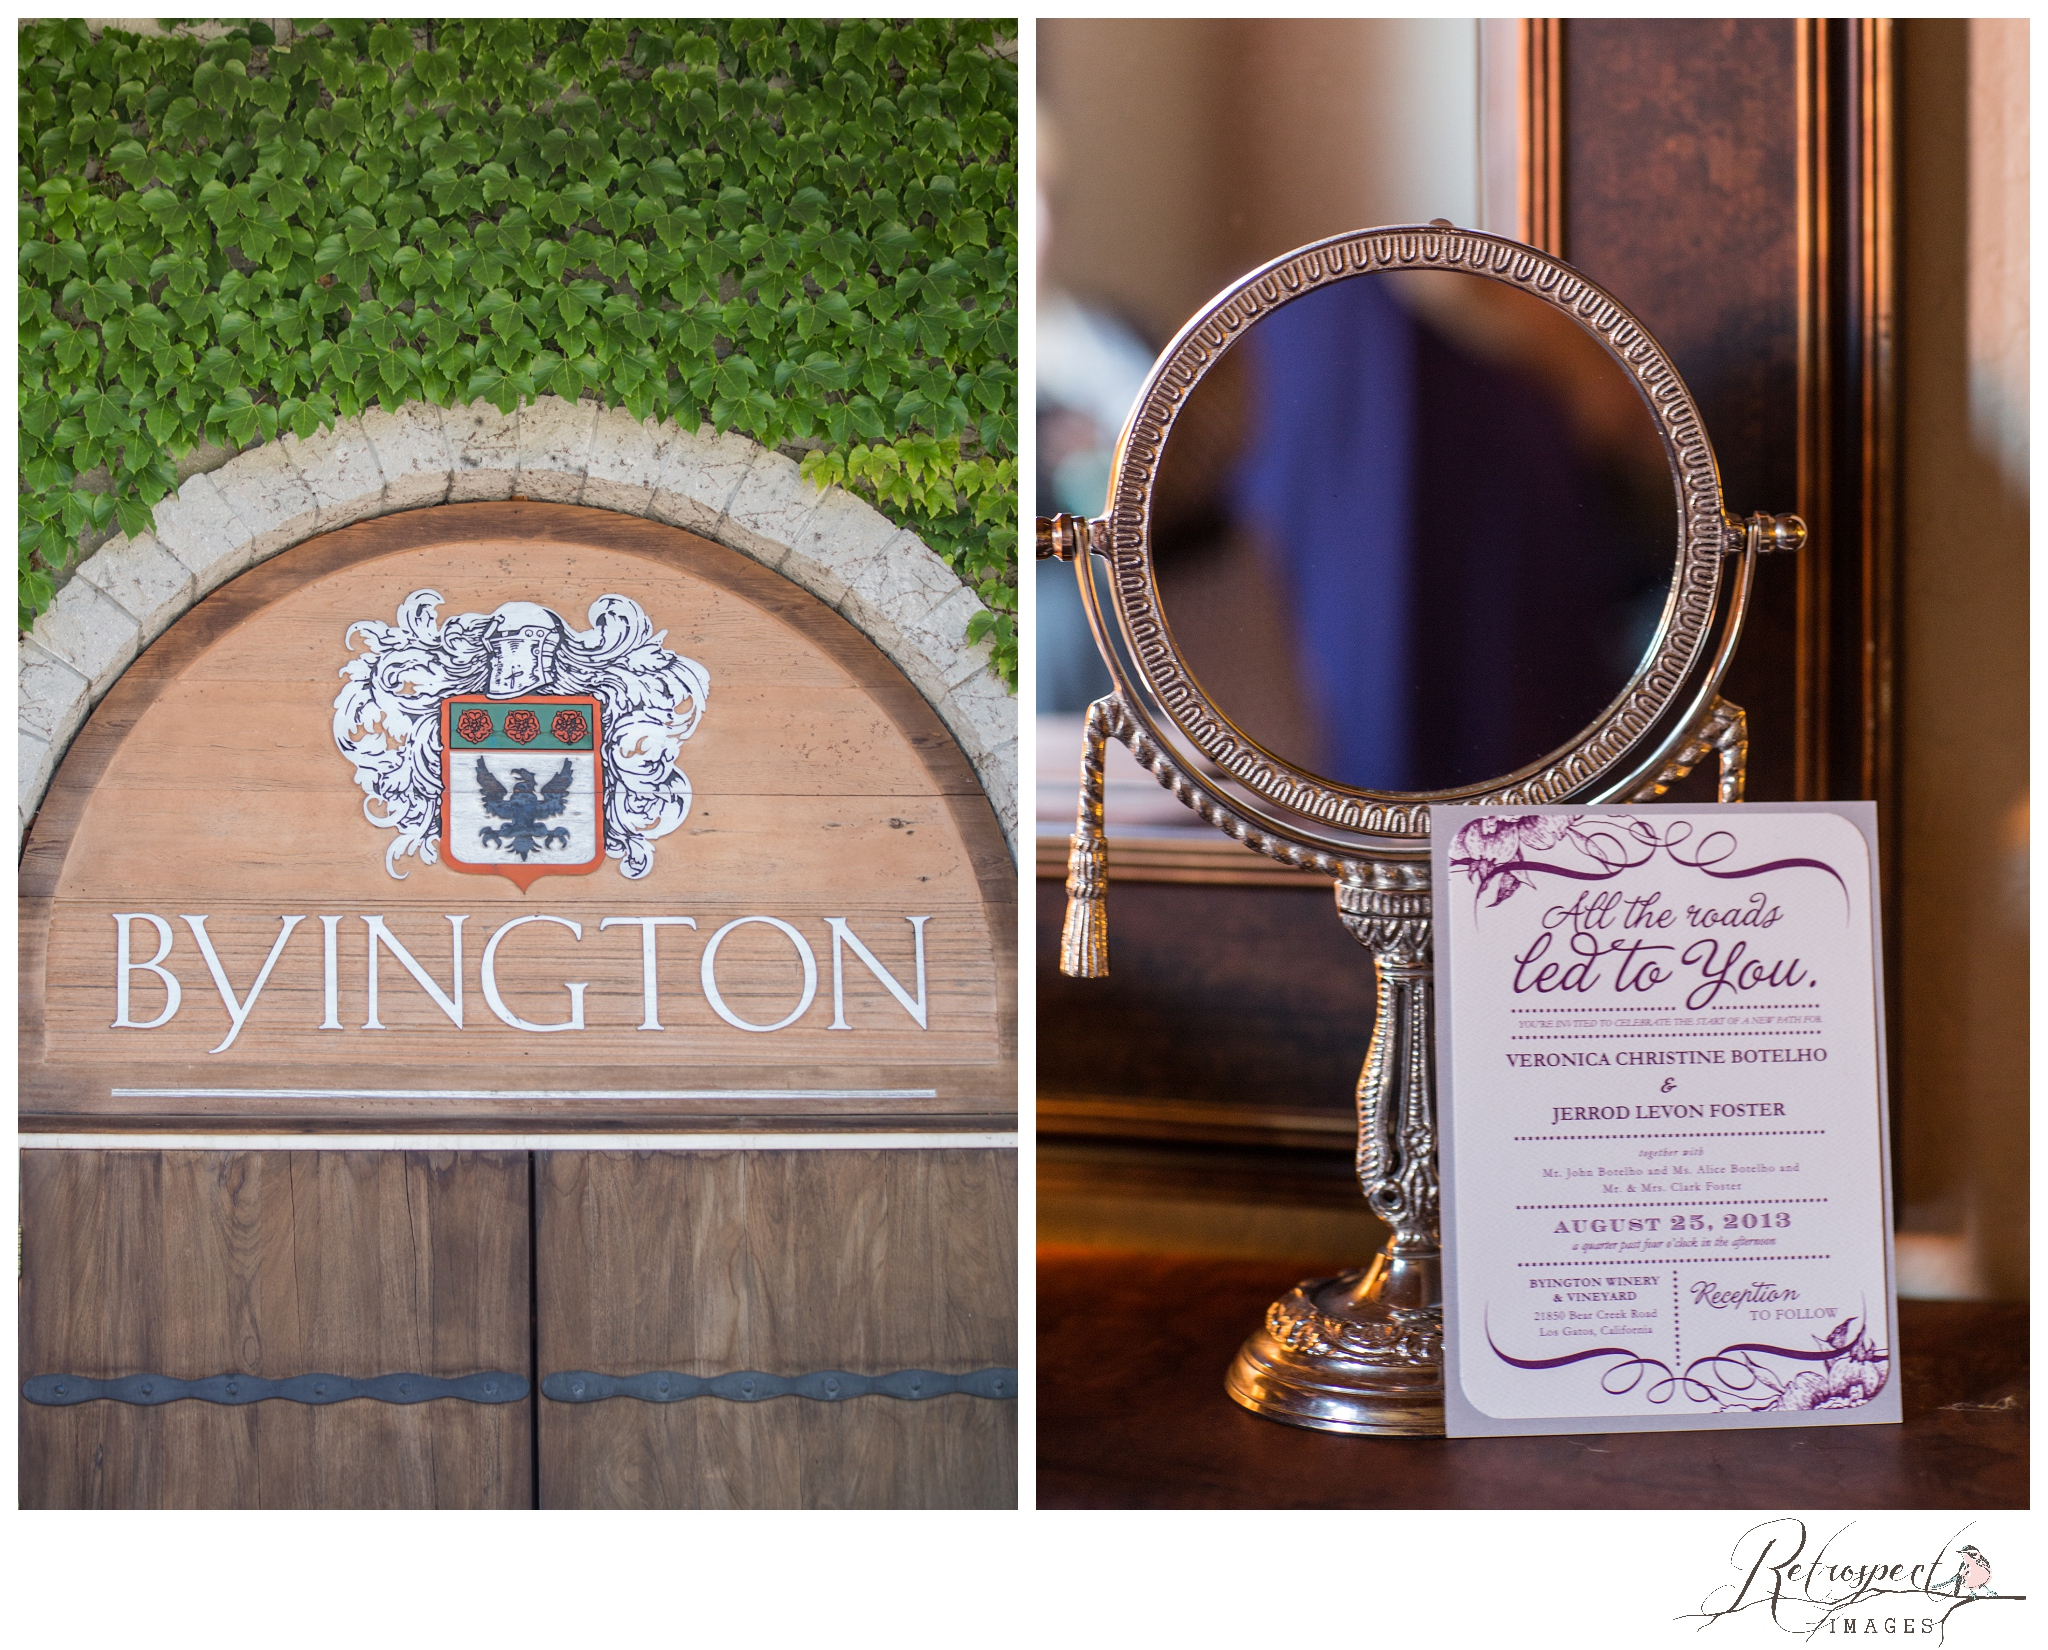 Byington Winery Wedding Byingtone Vineyard Winery Los